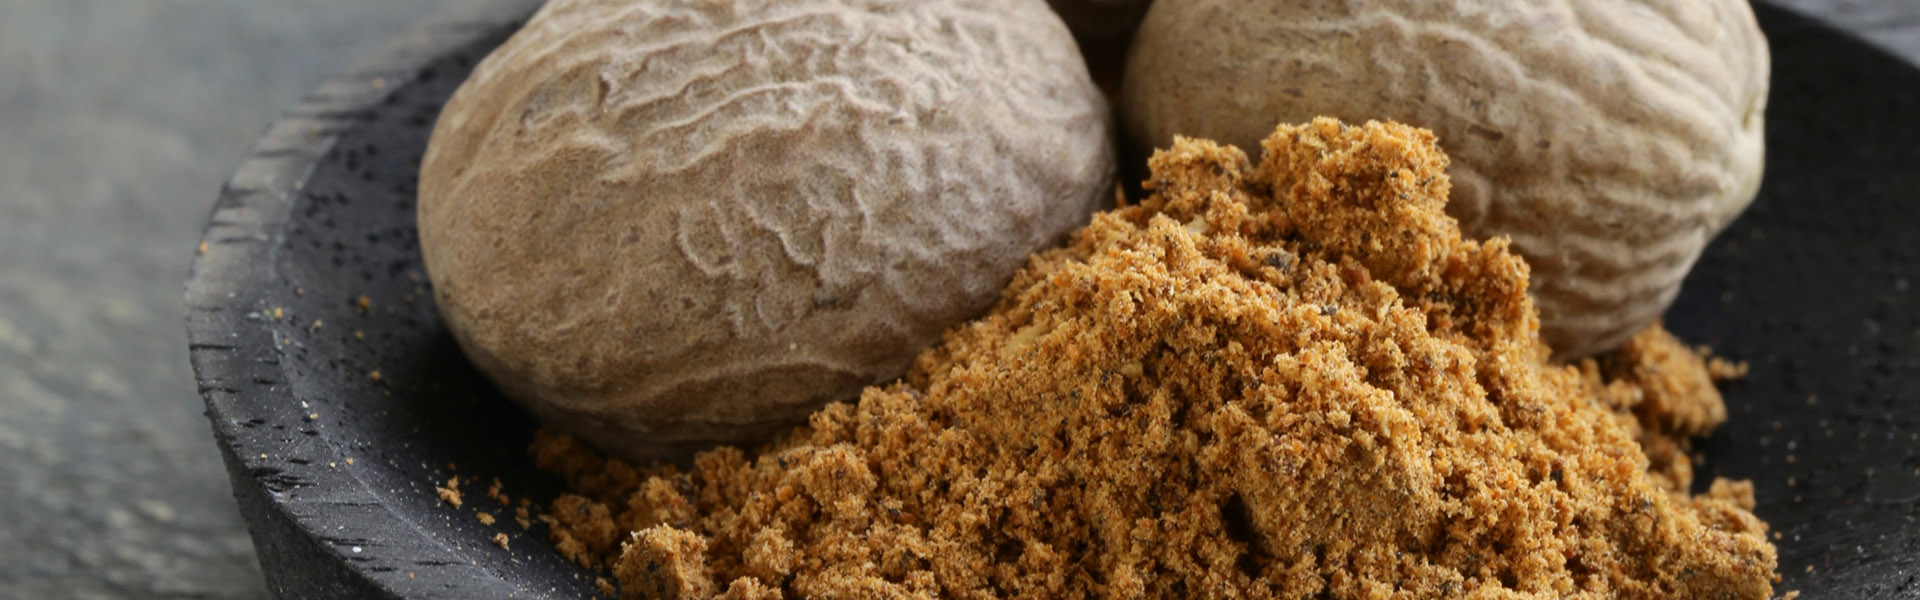 nutmeg-whole-and-grated-PGT49RJ